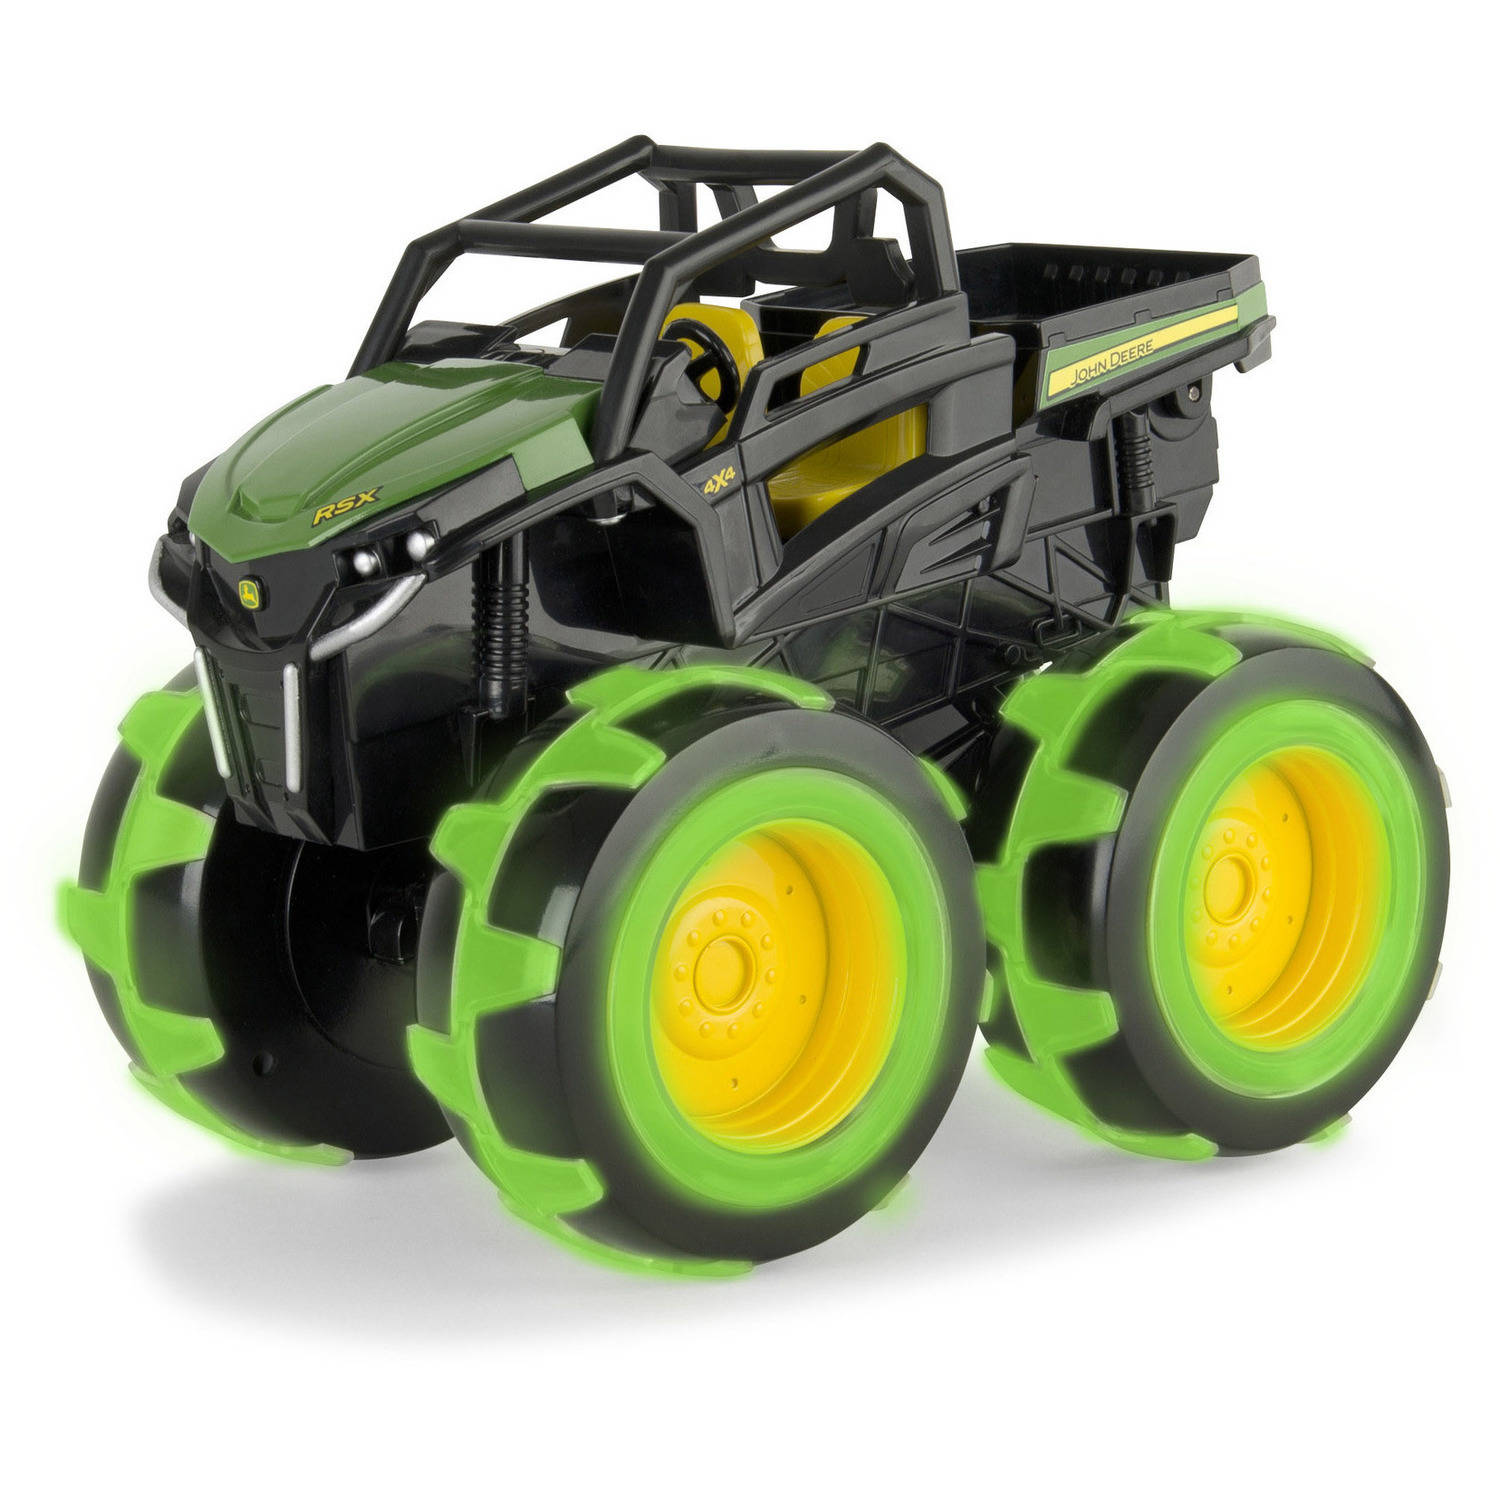 John Deere Gator with Lightning Wheels®